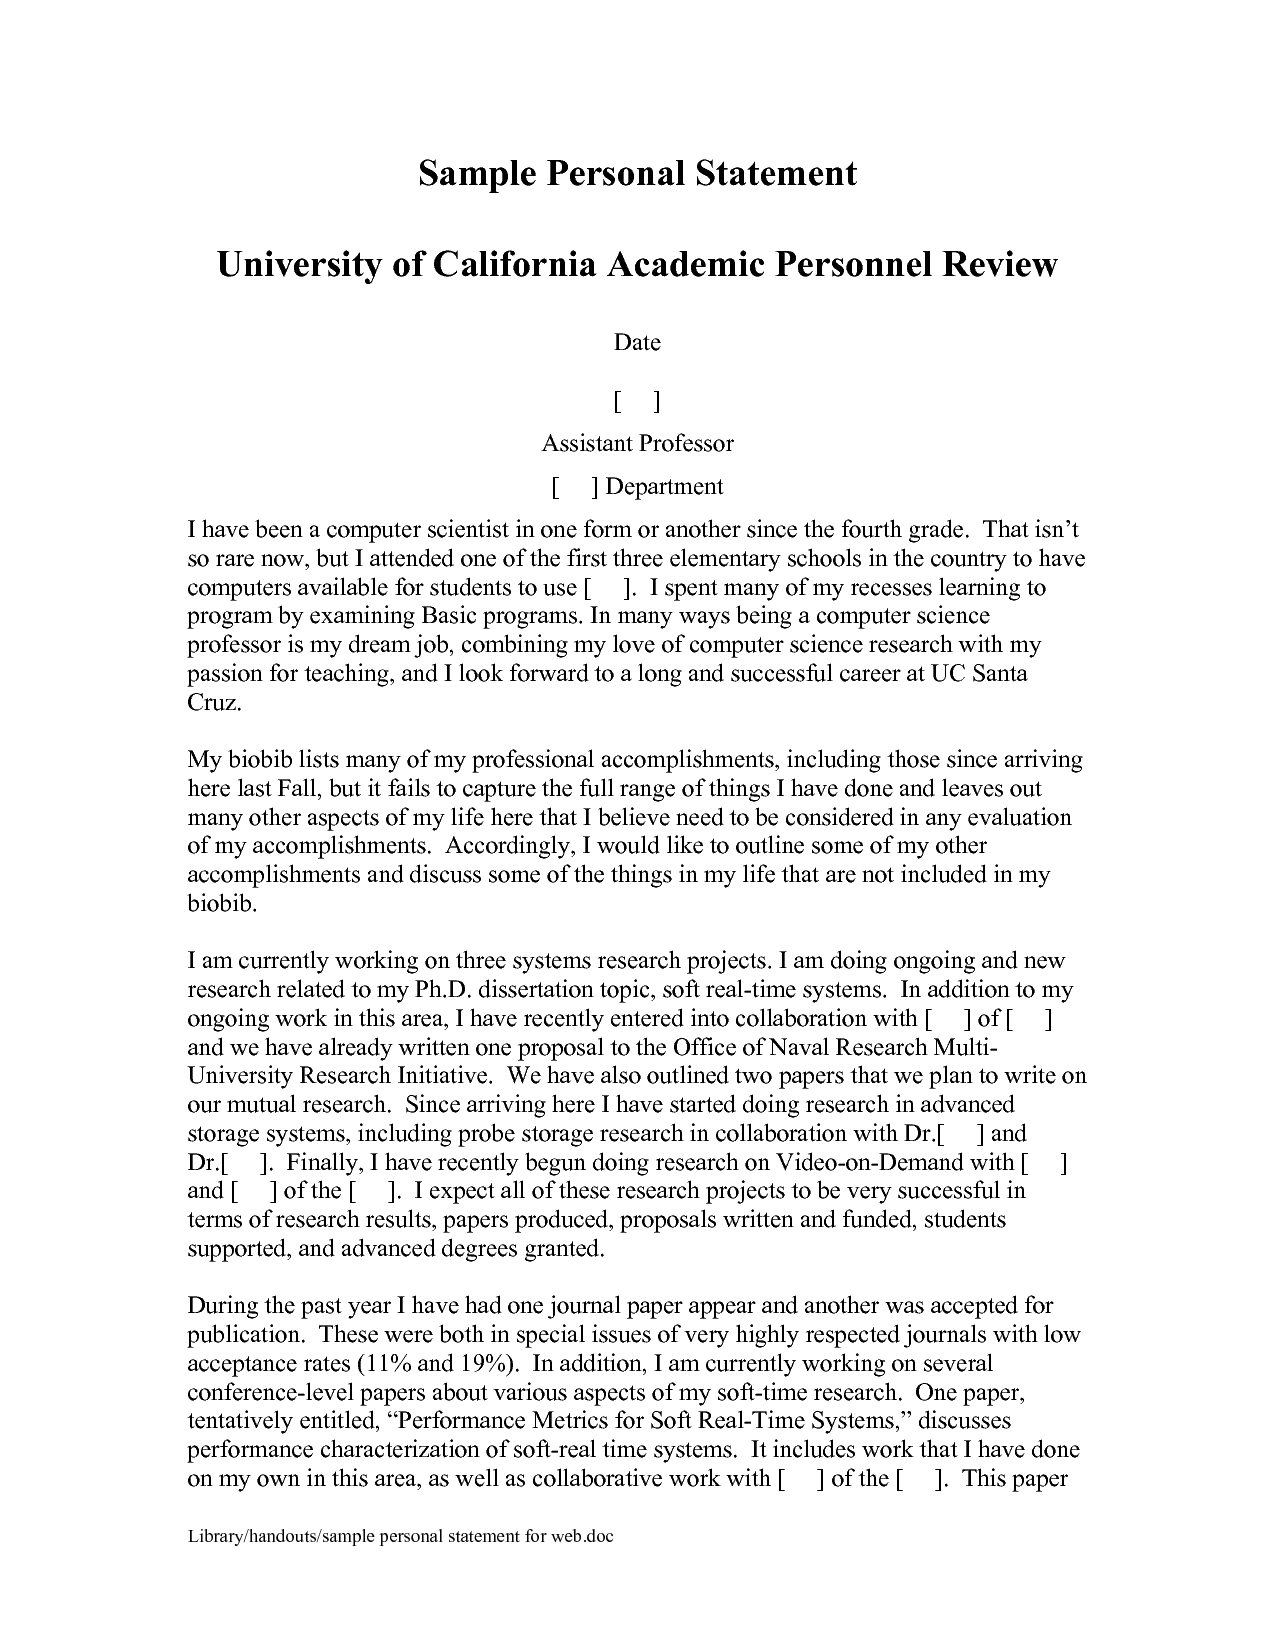 personal statement for graduate school sample   Physic